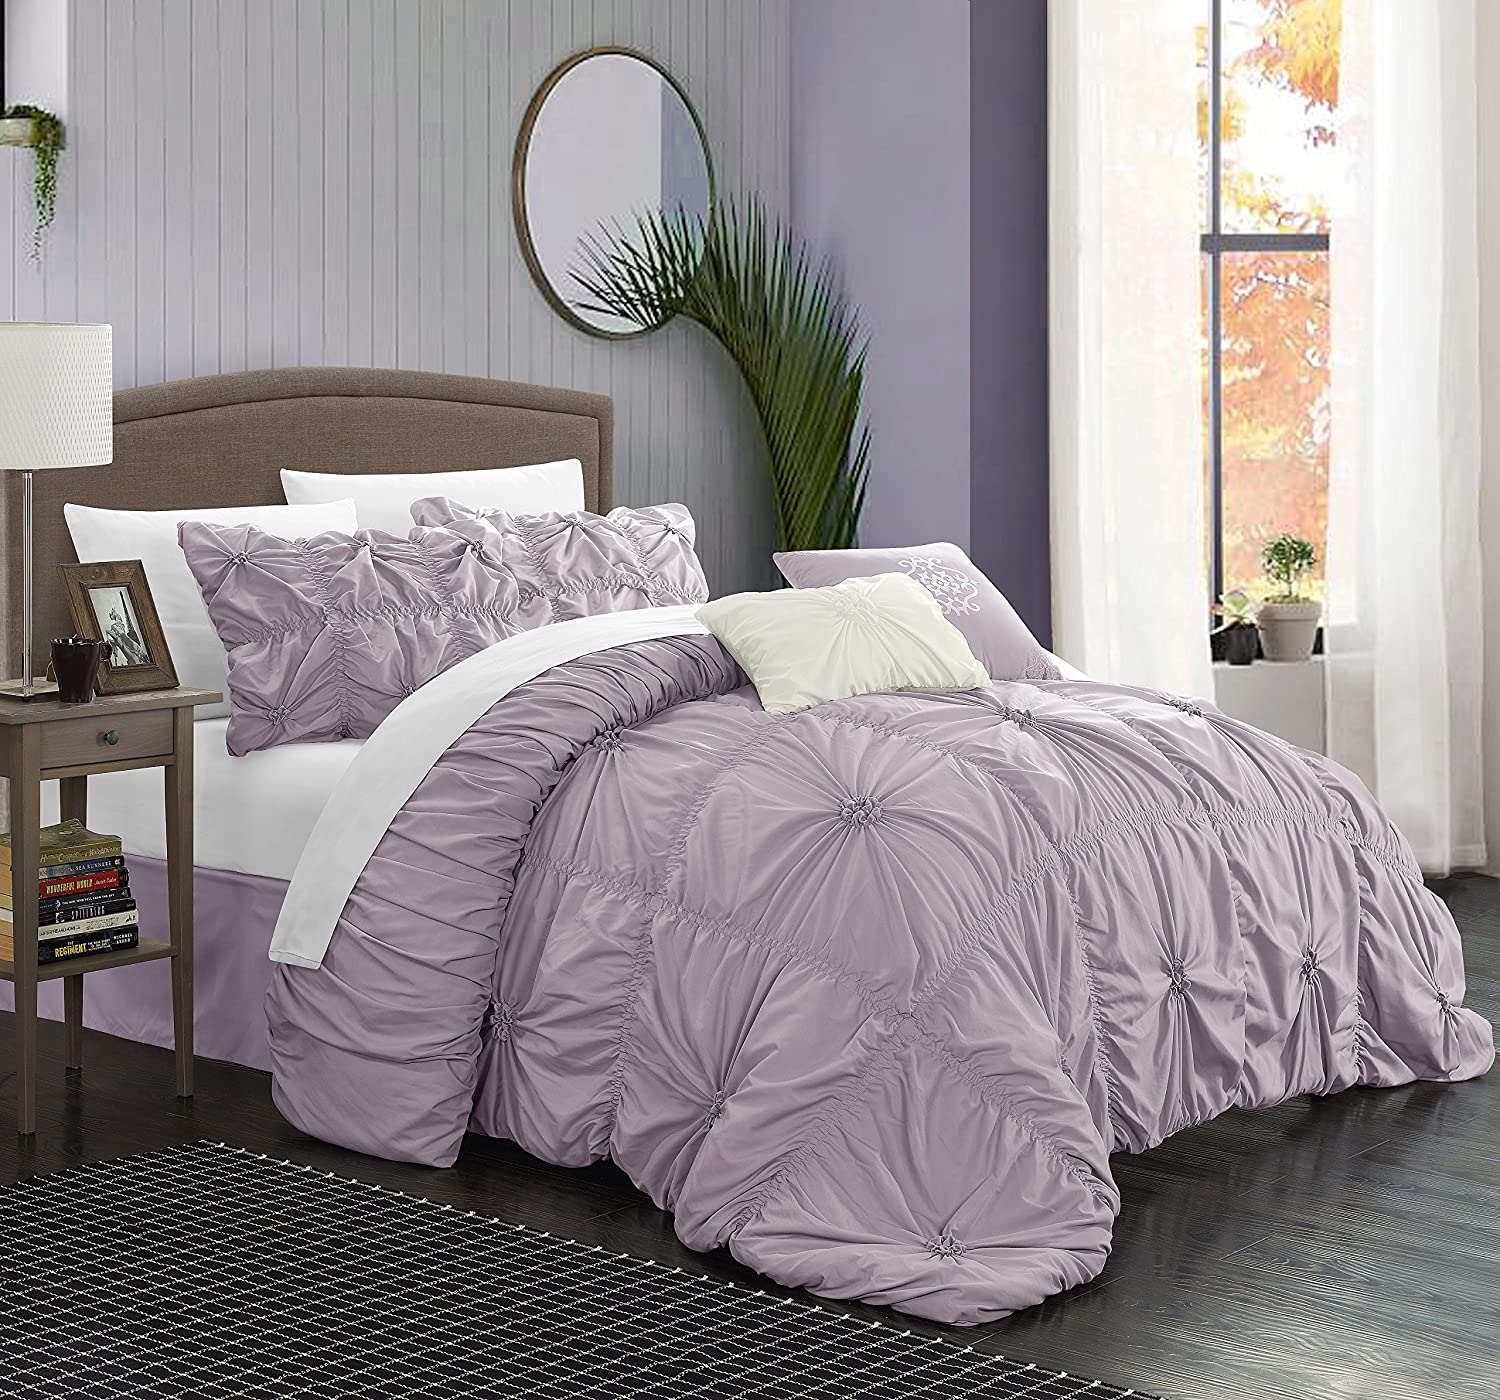 Chic Home 6 Piece Halpert Floral Pinch Pleat Ruffled Designer Embellished Comforter Set